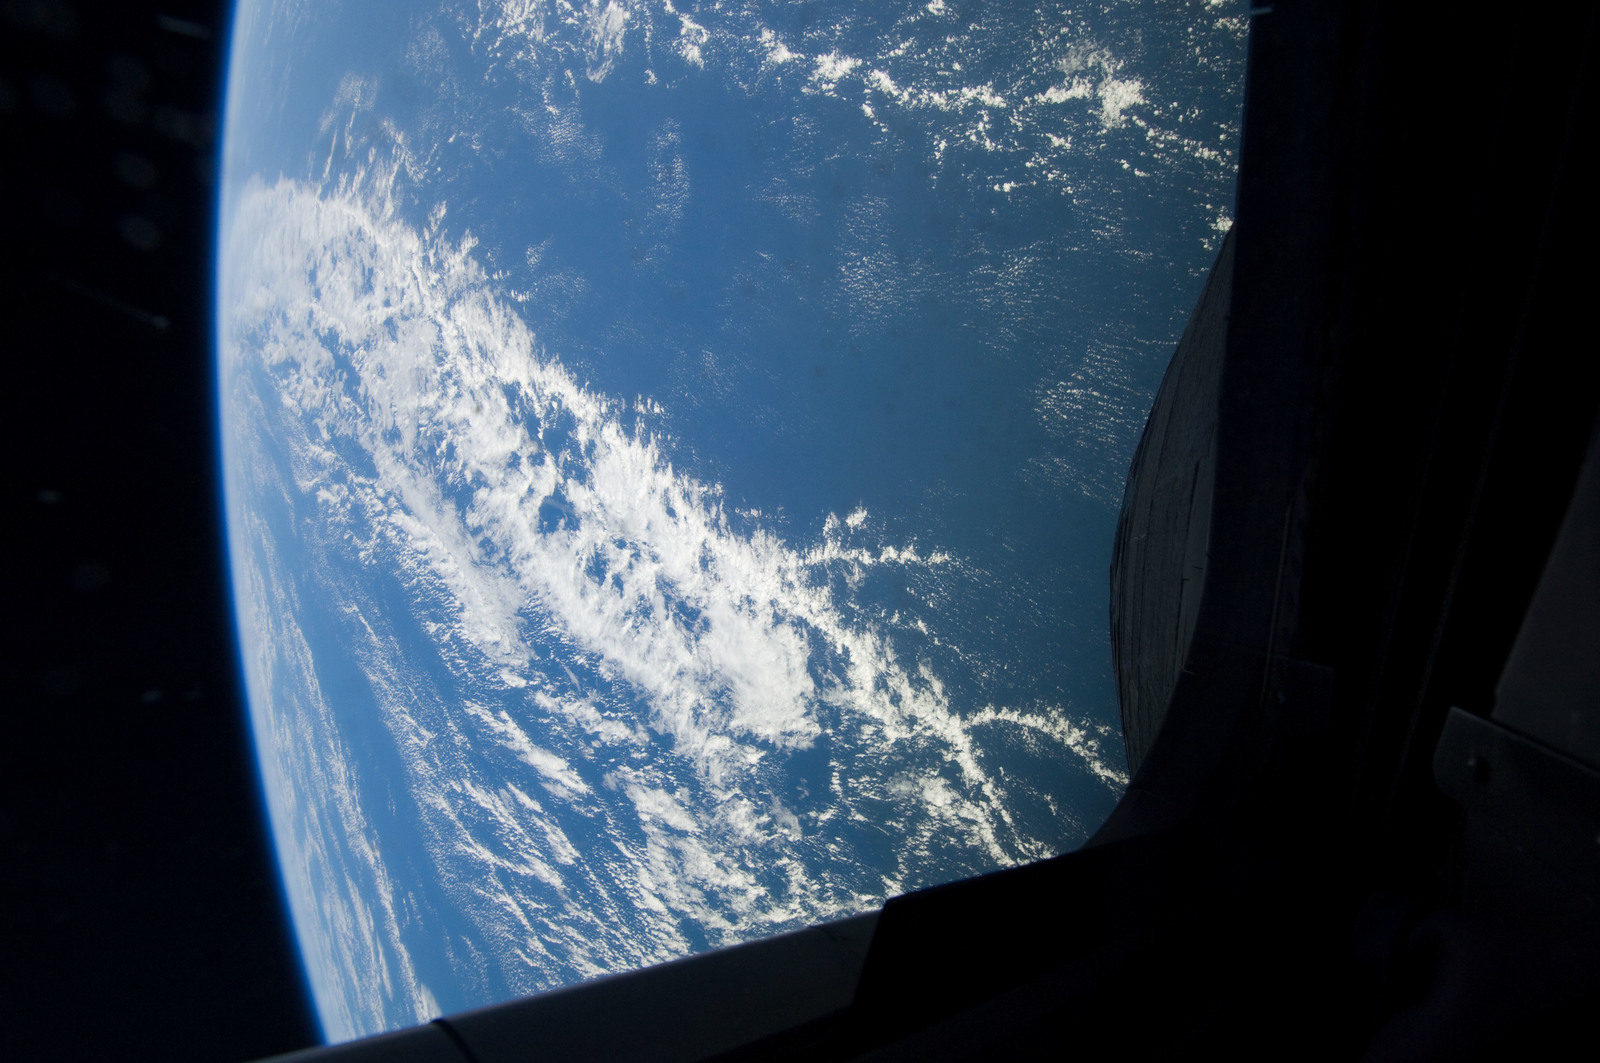 s133E006942 - STS-133 - Earth Observation taken by the STS-133 crew